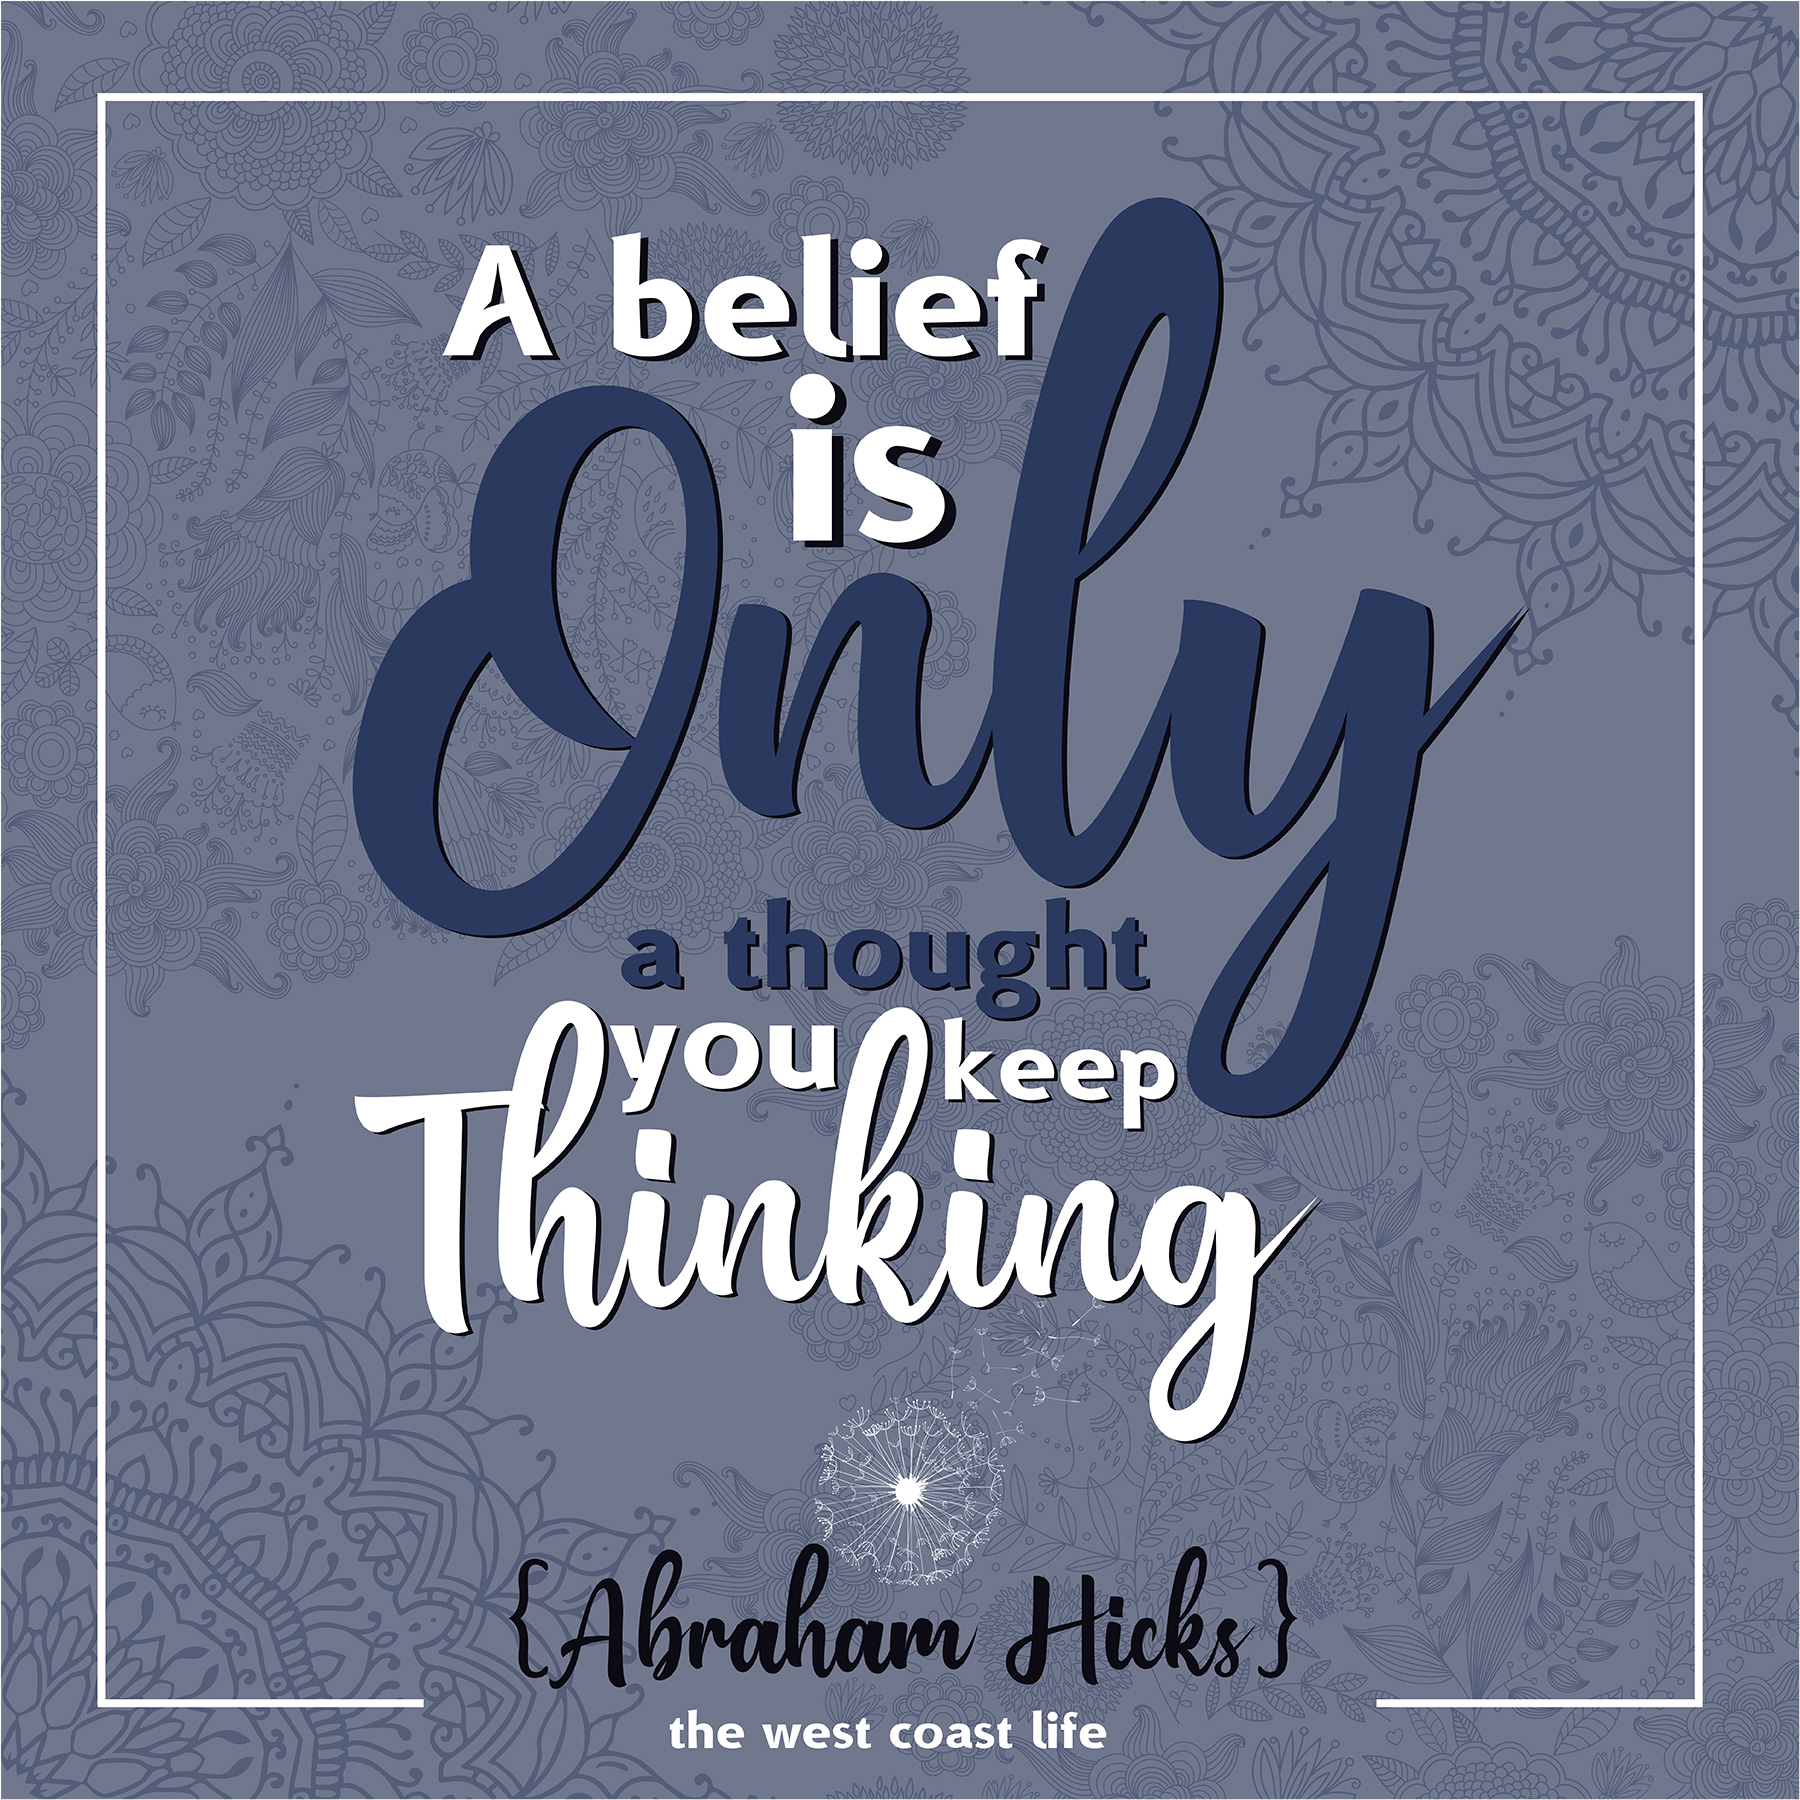 A belief is Only a thought you keep thinking {Abraham Hicks}